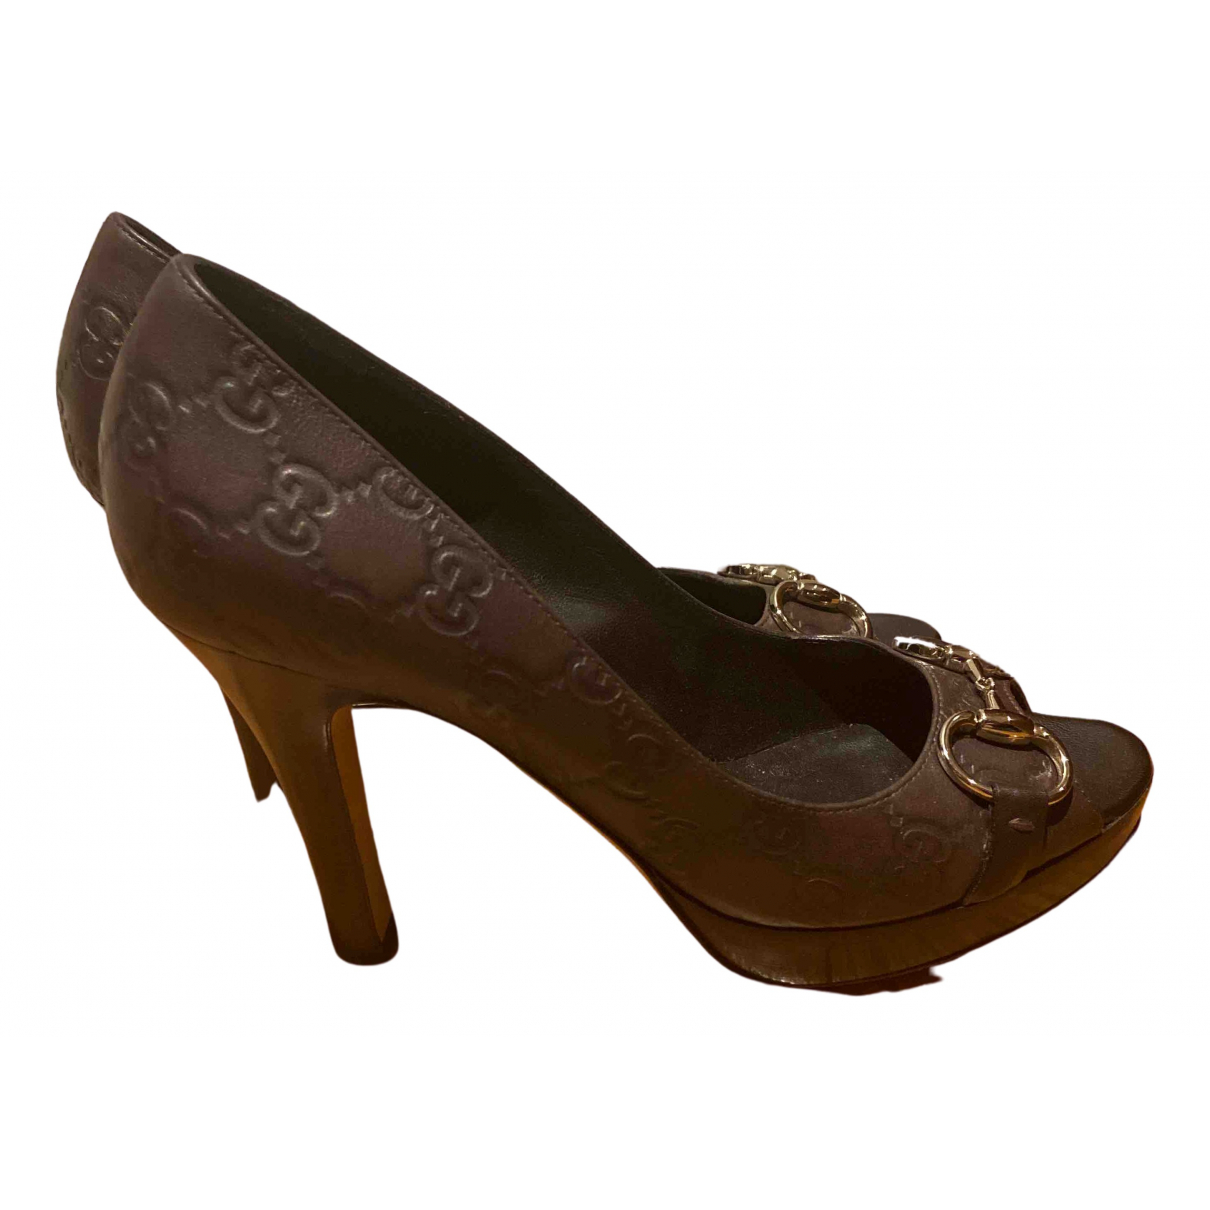 Gucci \N Brown Leather Heels for Women 38.5 EU